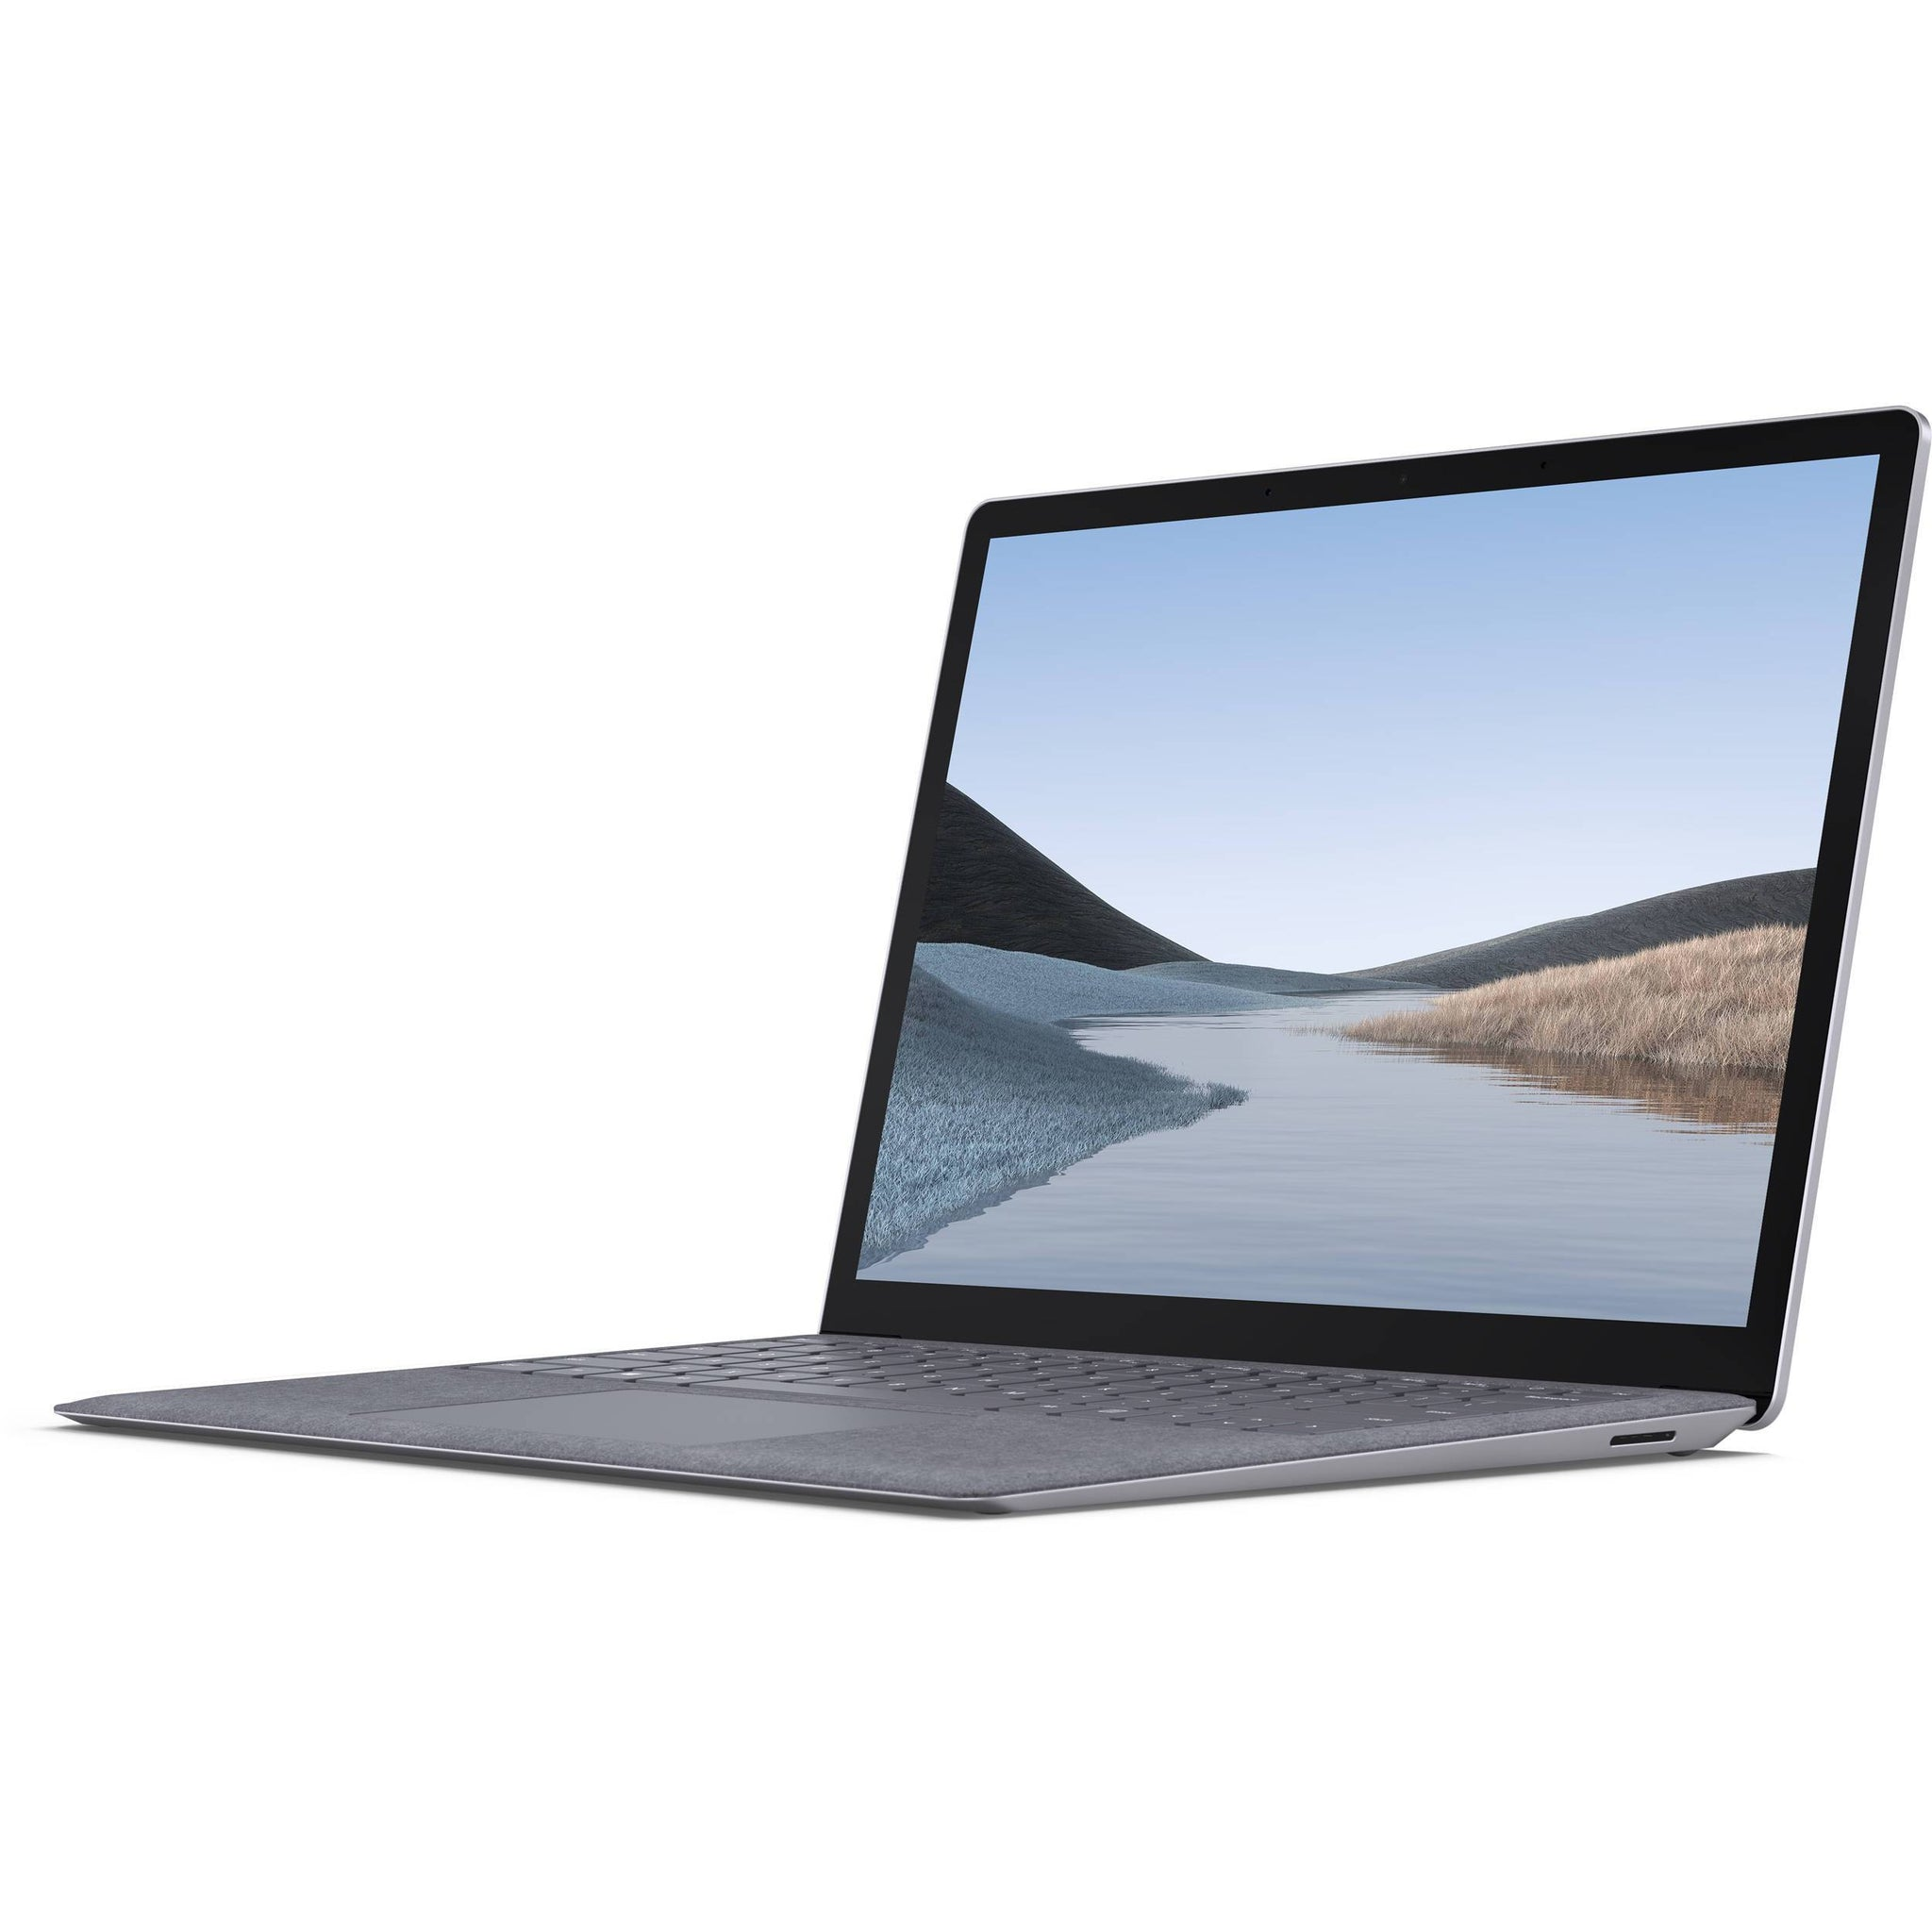 "Microsoft 13.5"" Multi-Touch Surface Laptop 3 (Sandstone) 